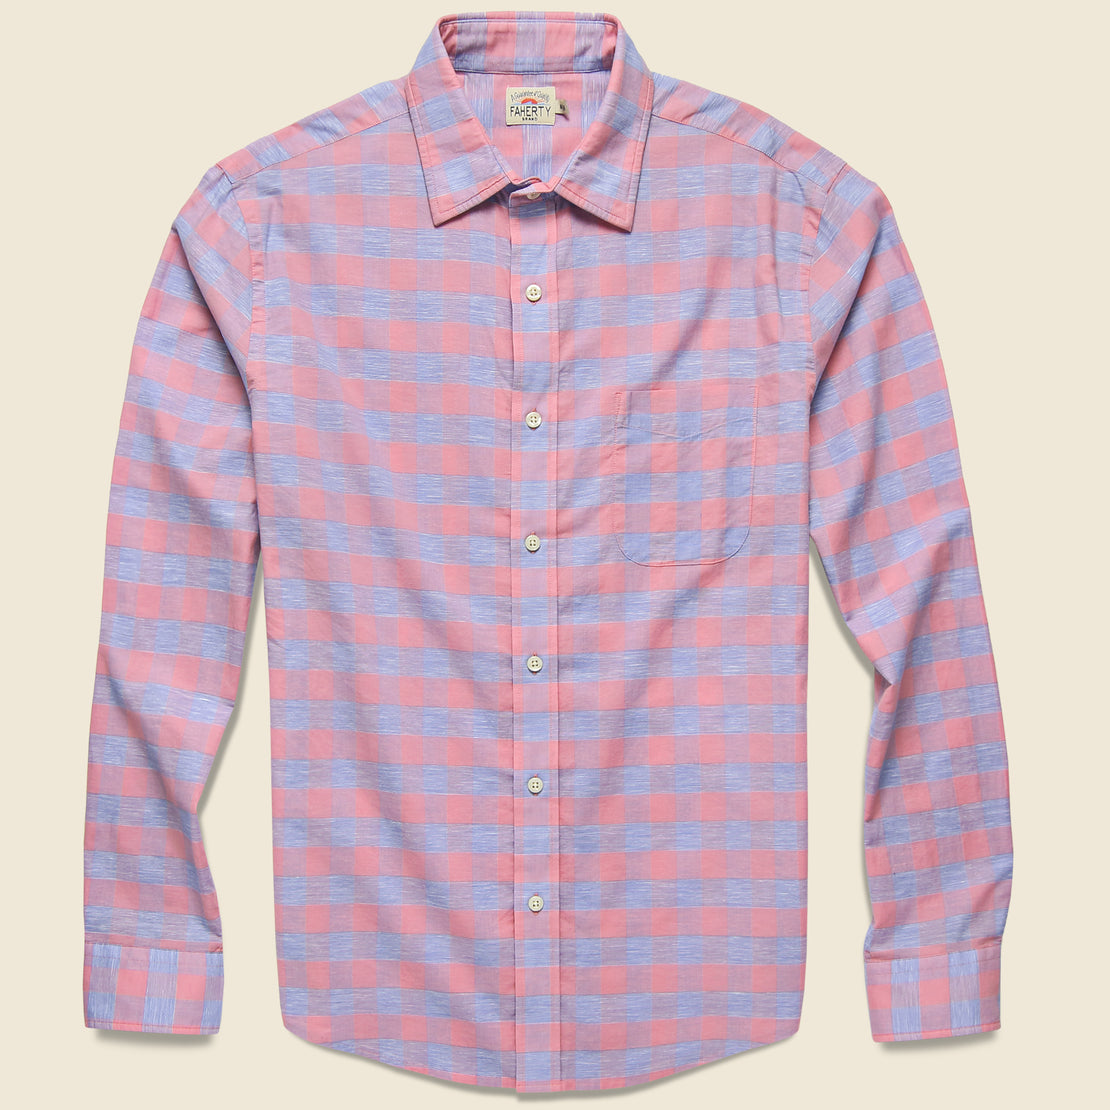 Faherty Stretch Summer Blend Shirt - Rose Buffalo Check